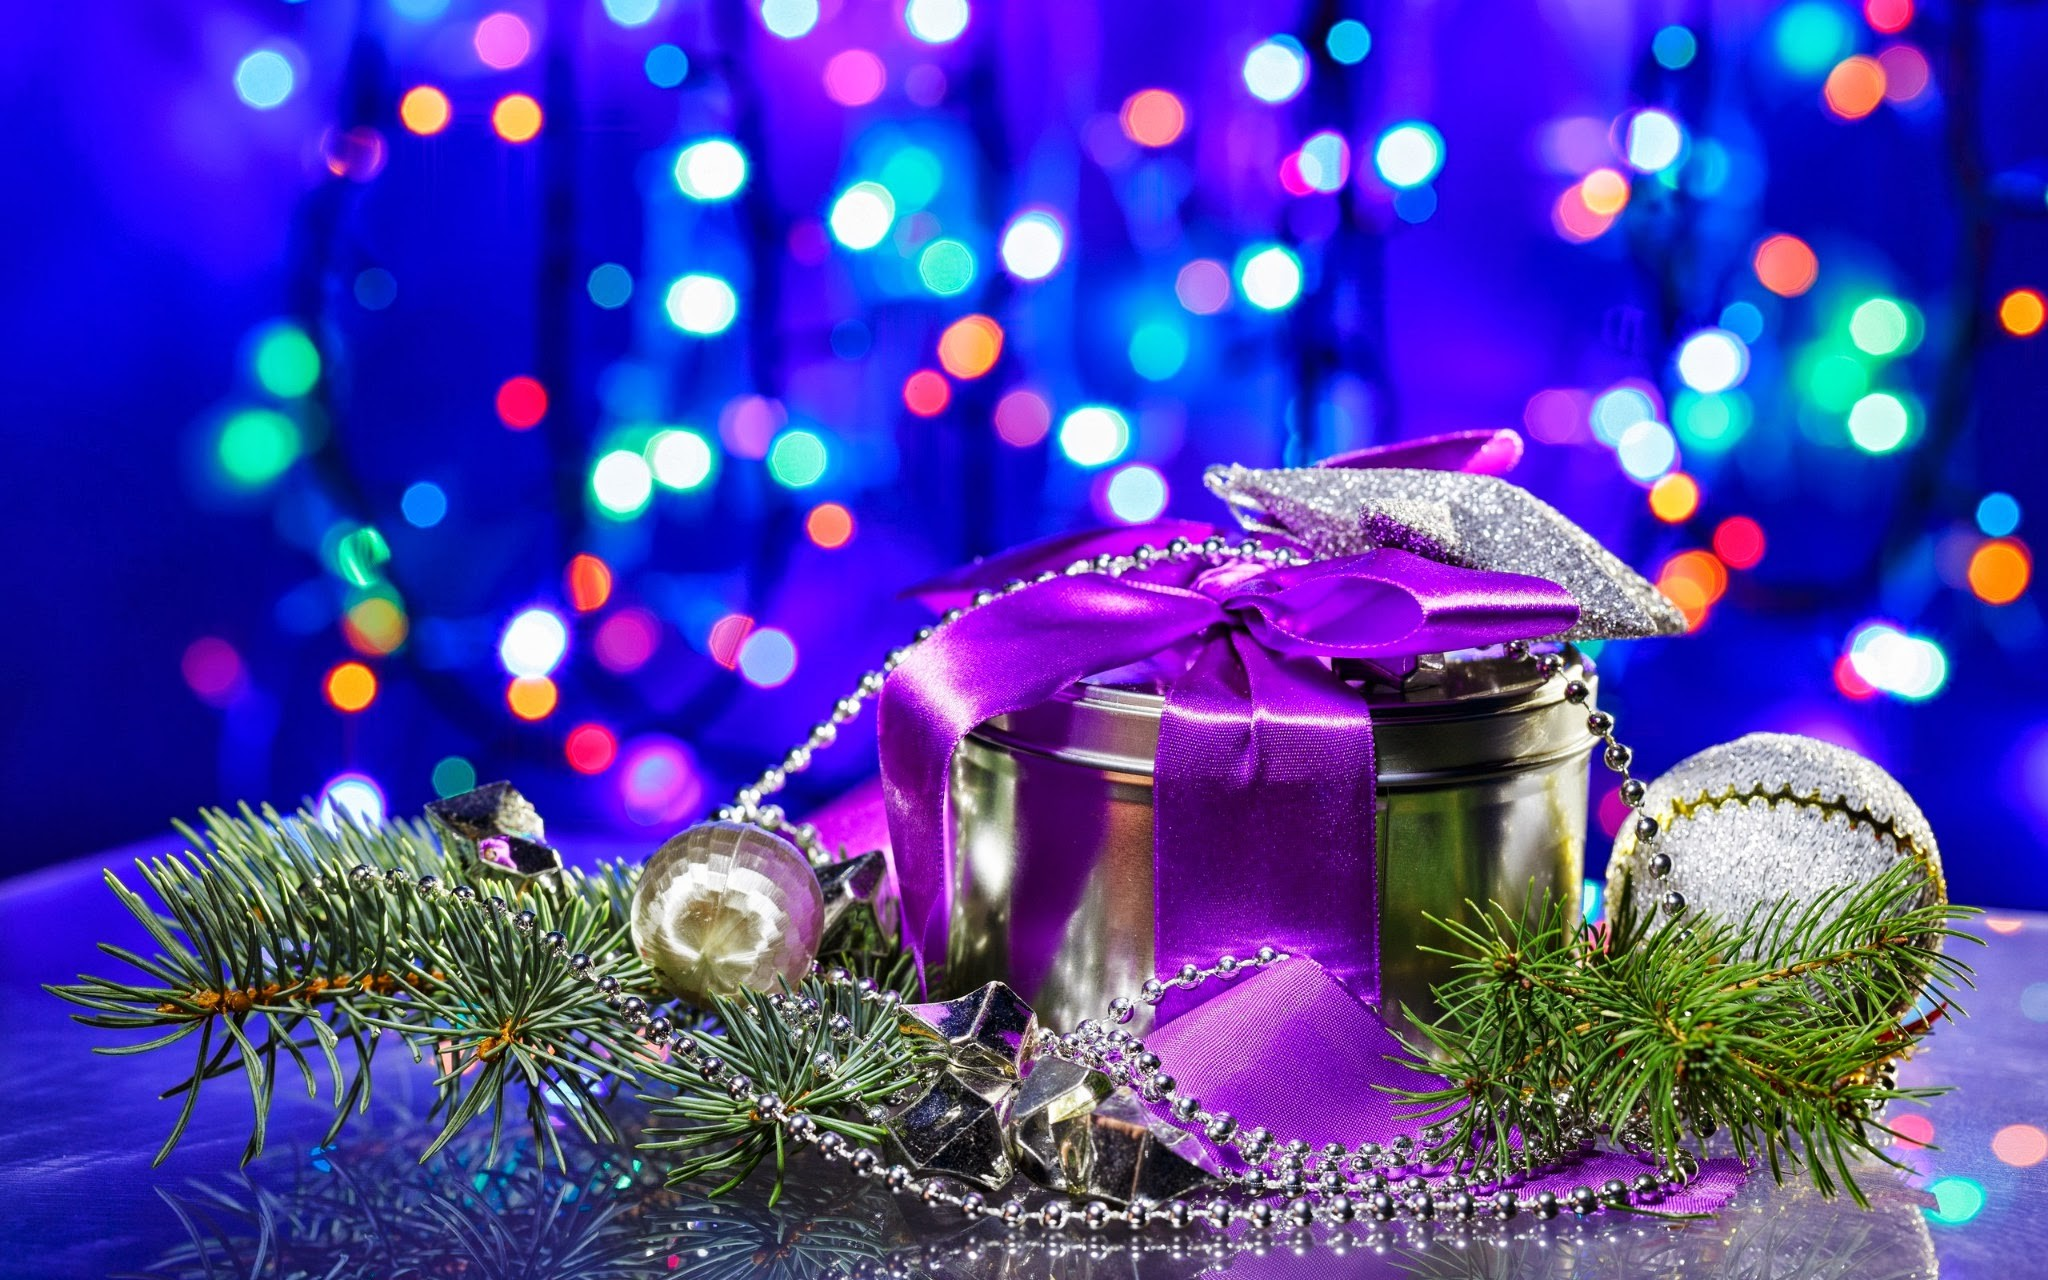 Res: 2048x1280, Luxury Christmas Gifts Wallpaper HD Wallpaper